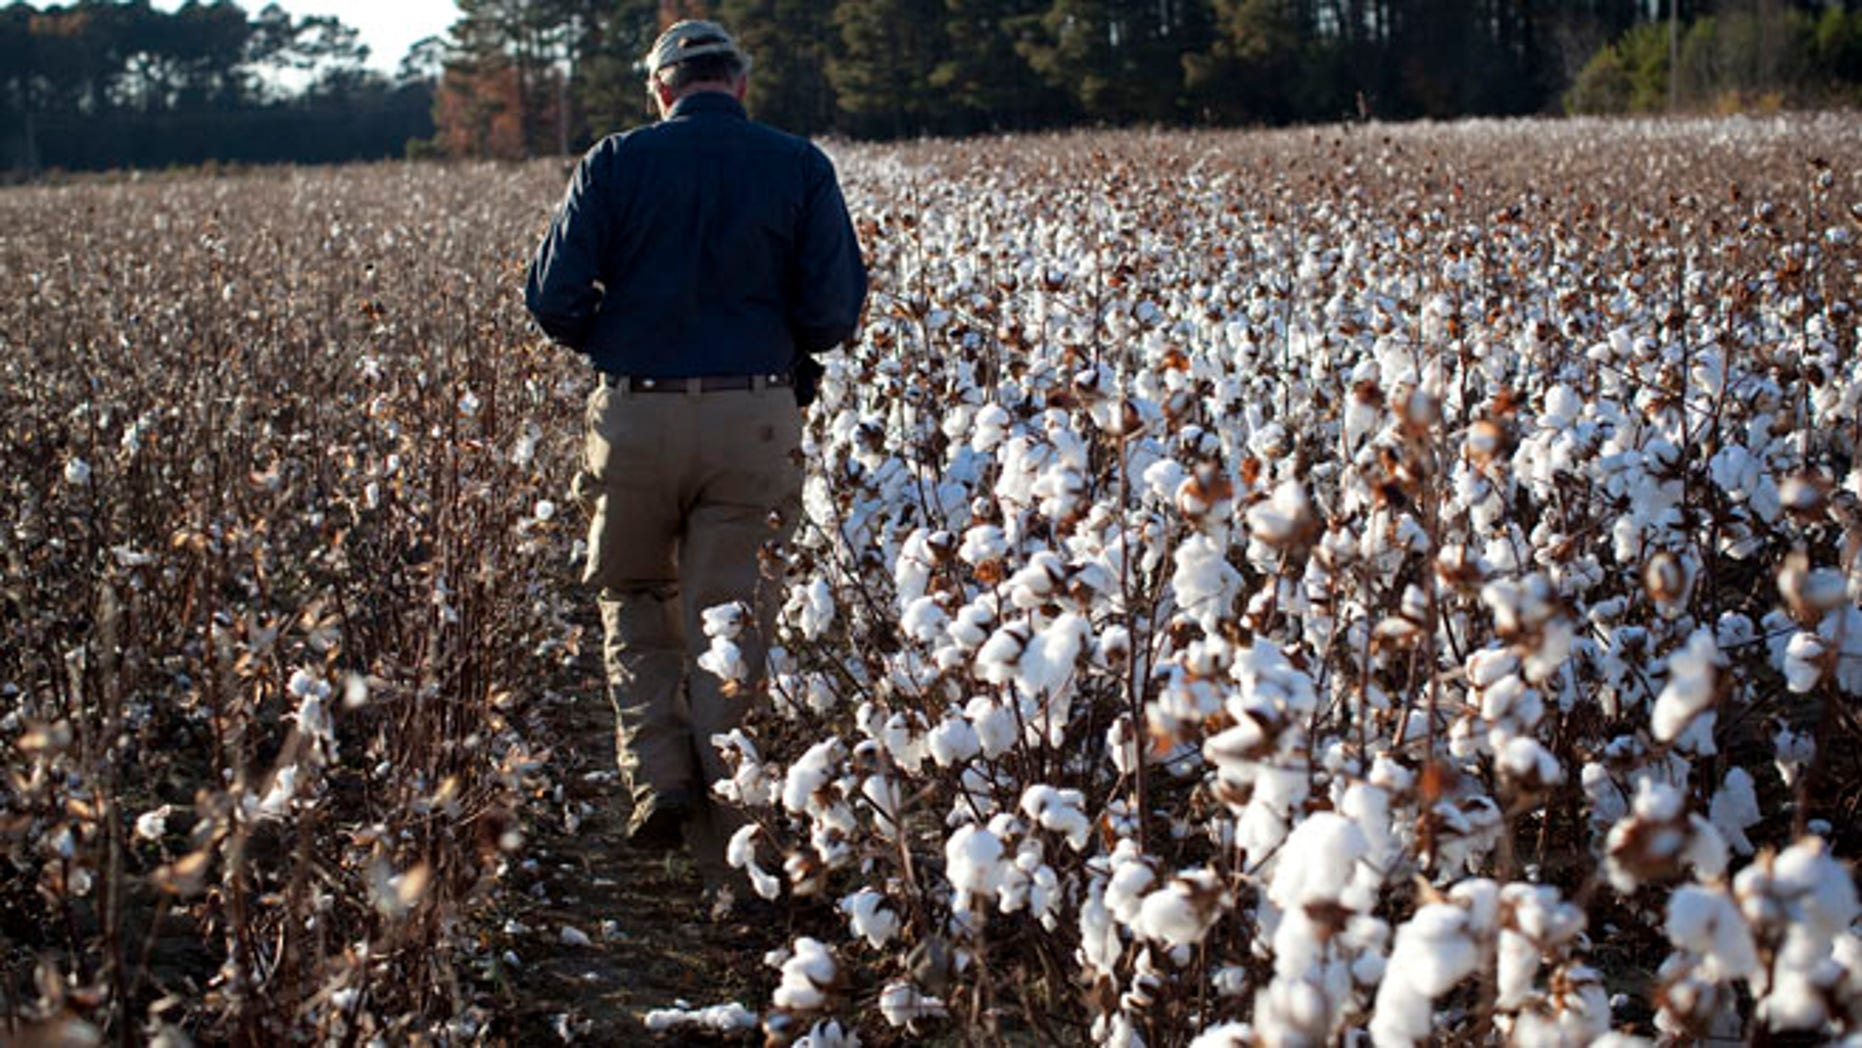 Farmer Roy Baxley, Jr. walks through a cotton field during the harvest on his farm in Minturn, South Carolina November 24, 2012.